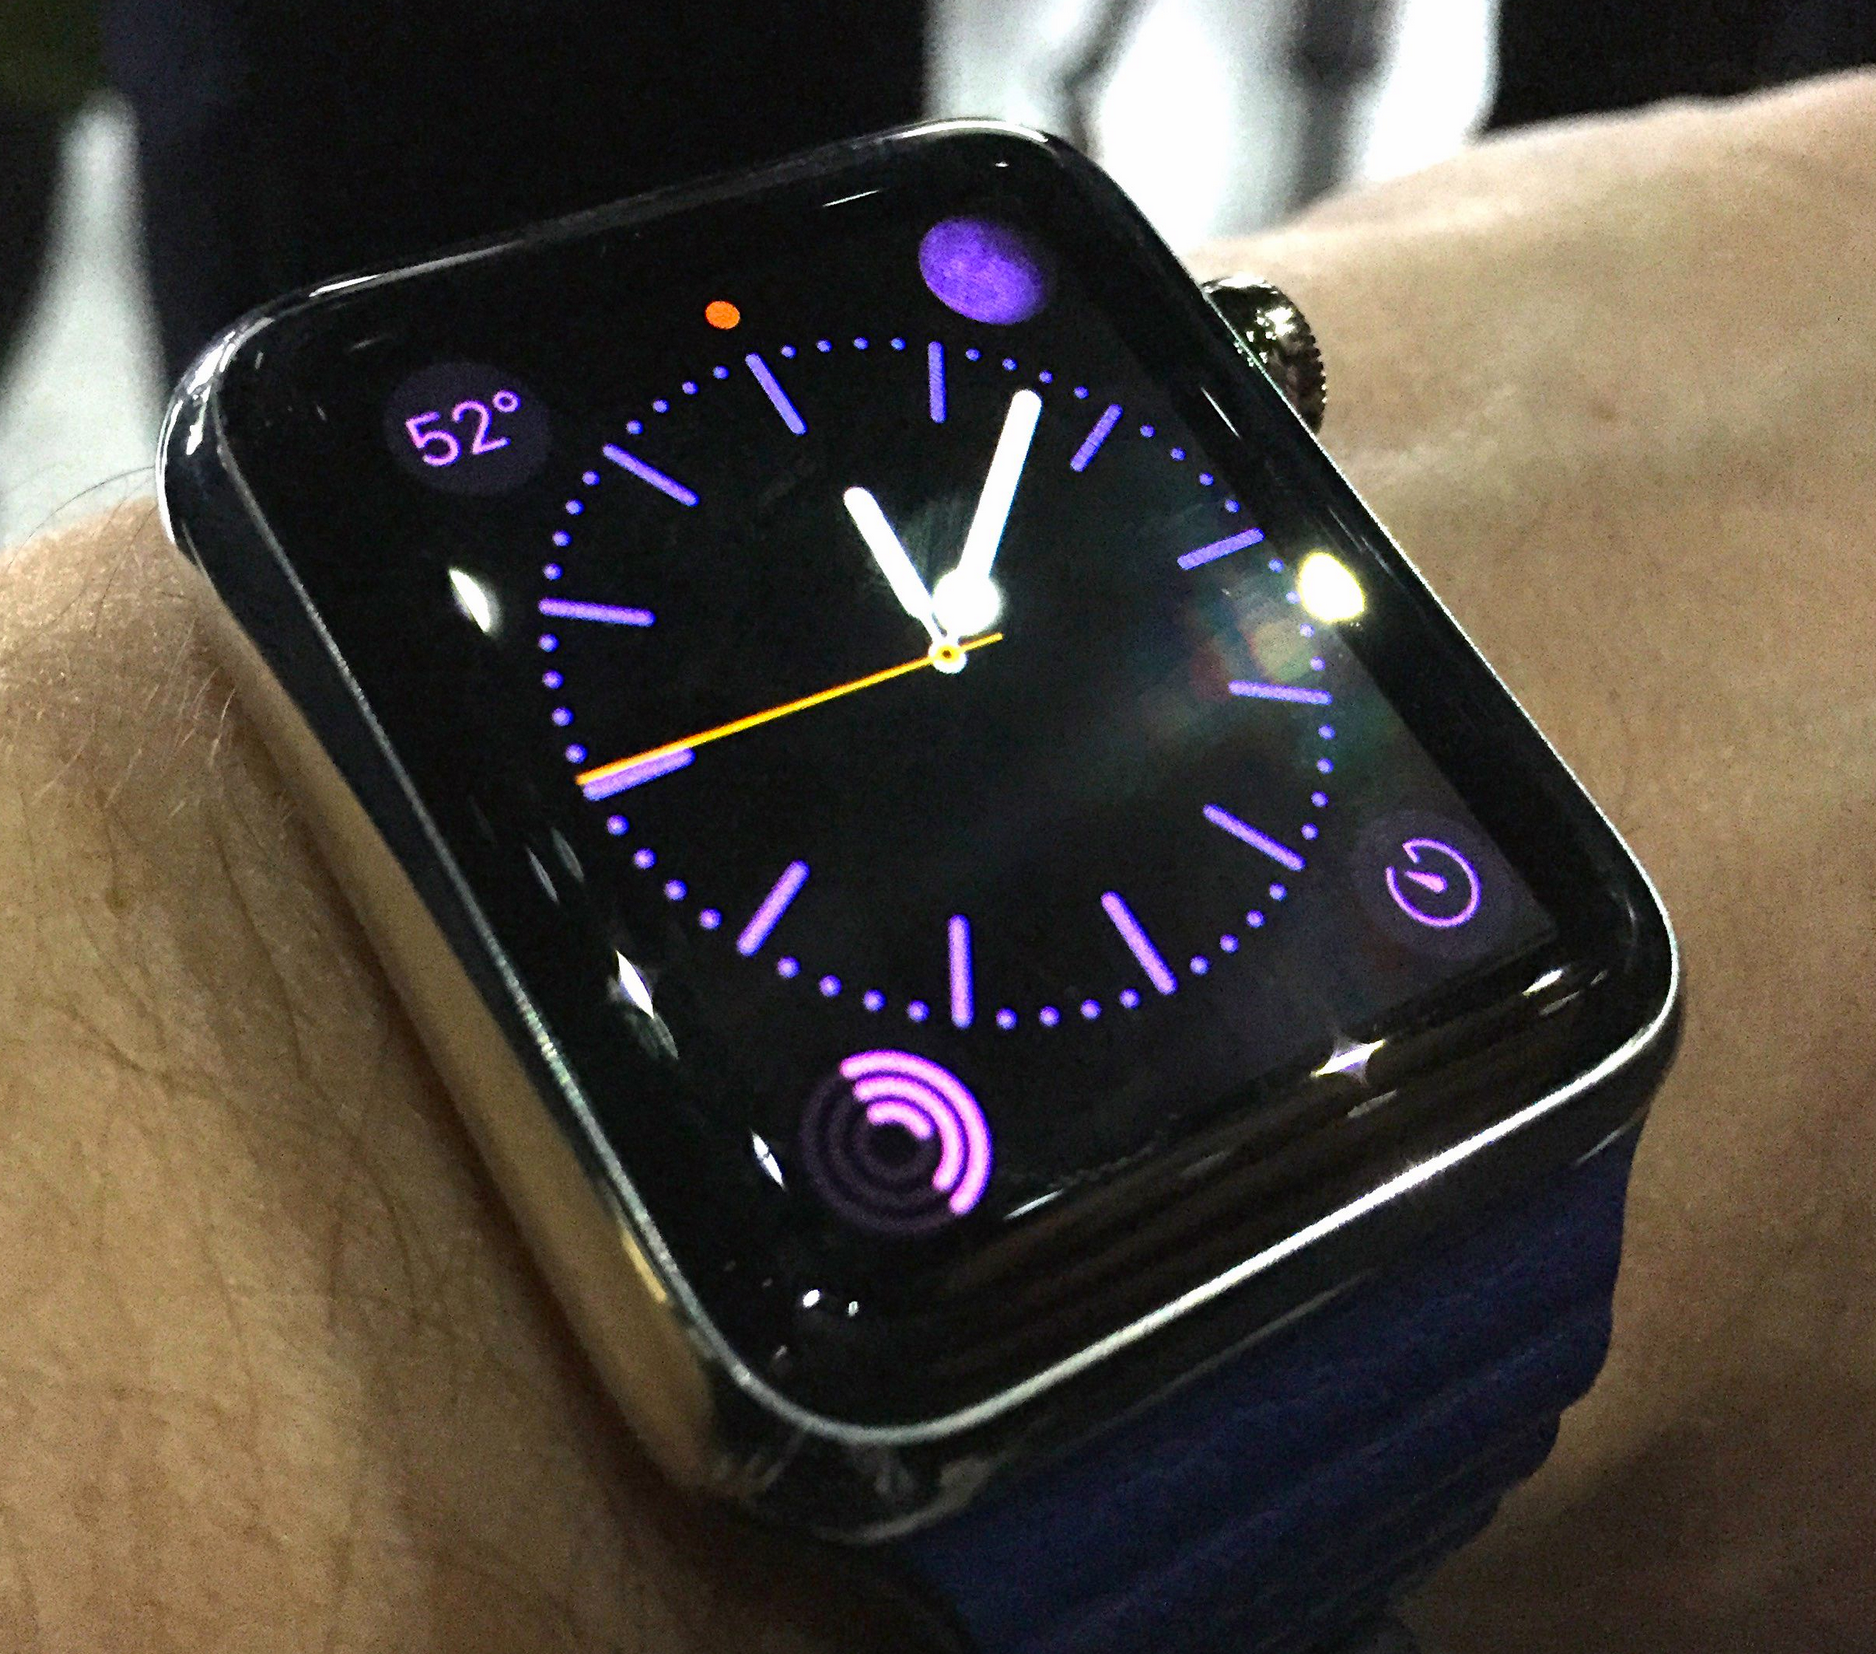 Inconvenient Truths About The Apple Watch